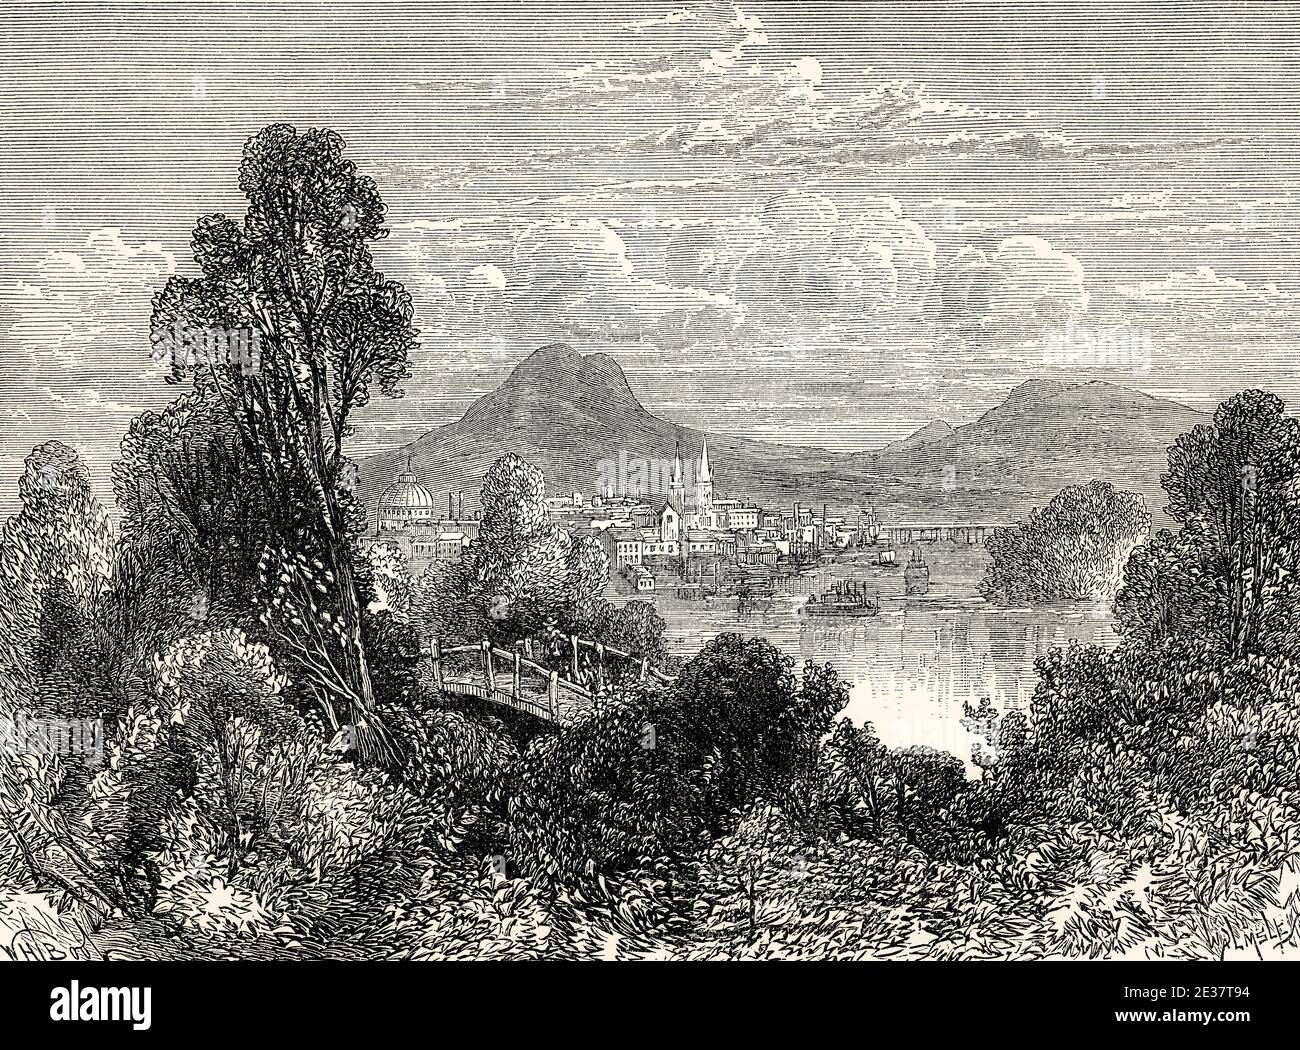 view of Long Island, U.S. state of New York, United States, 18th century Stock Photo